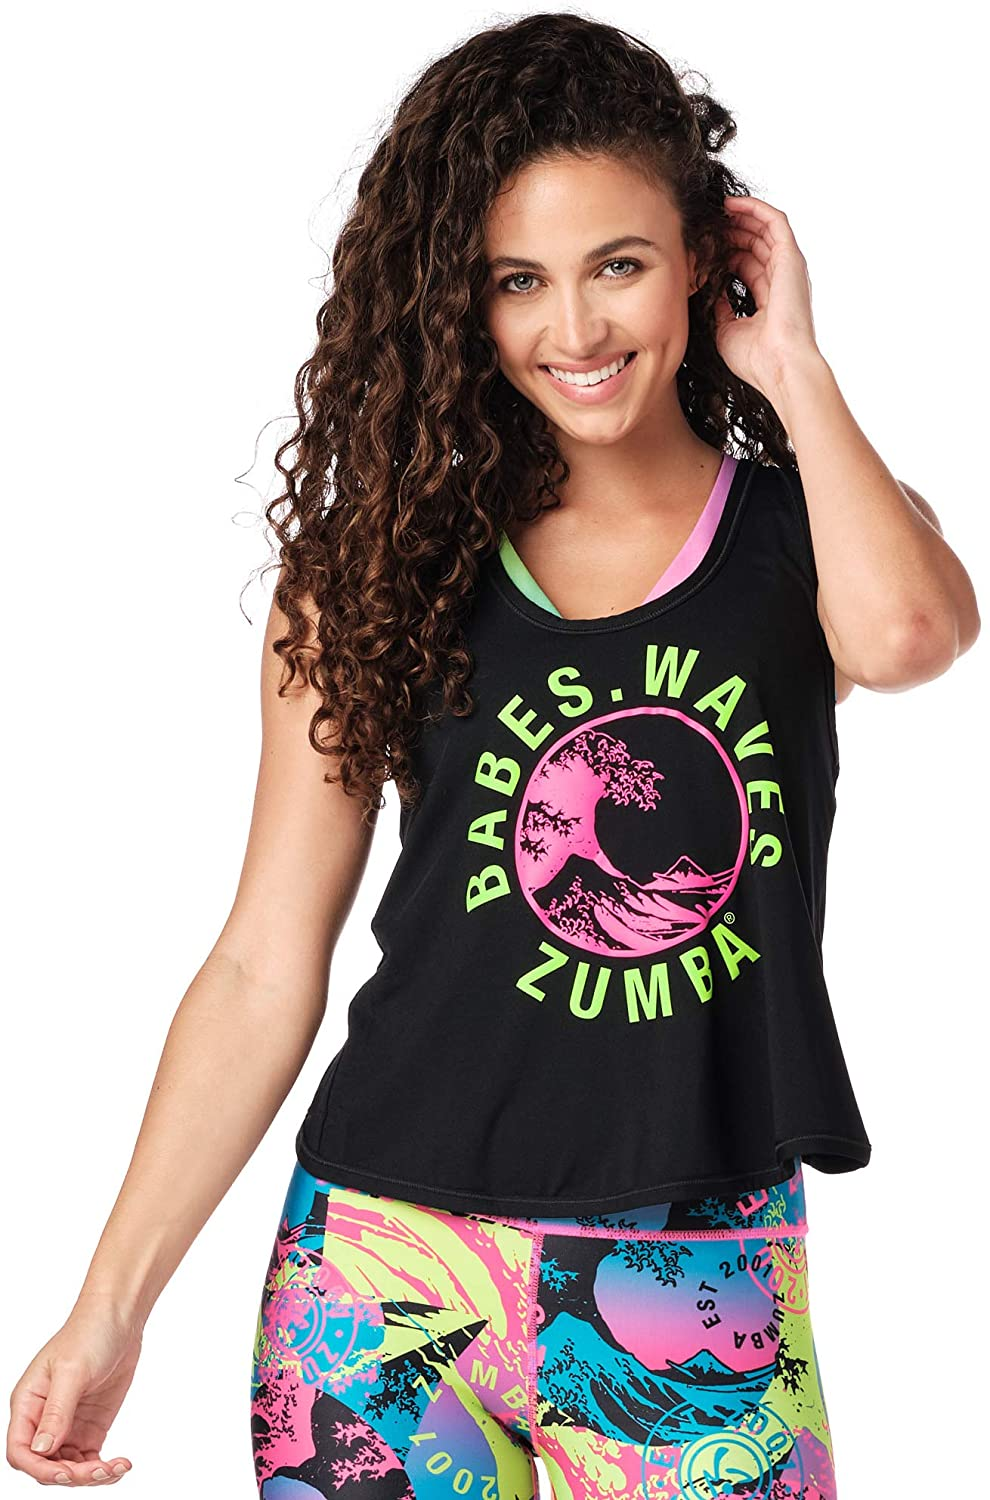 Zumba Workout Cross Back Sexy Tank Tops for Women Graphic Print Open Back Tops,